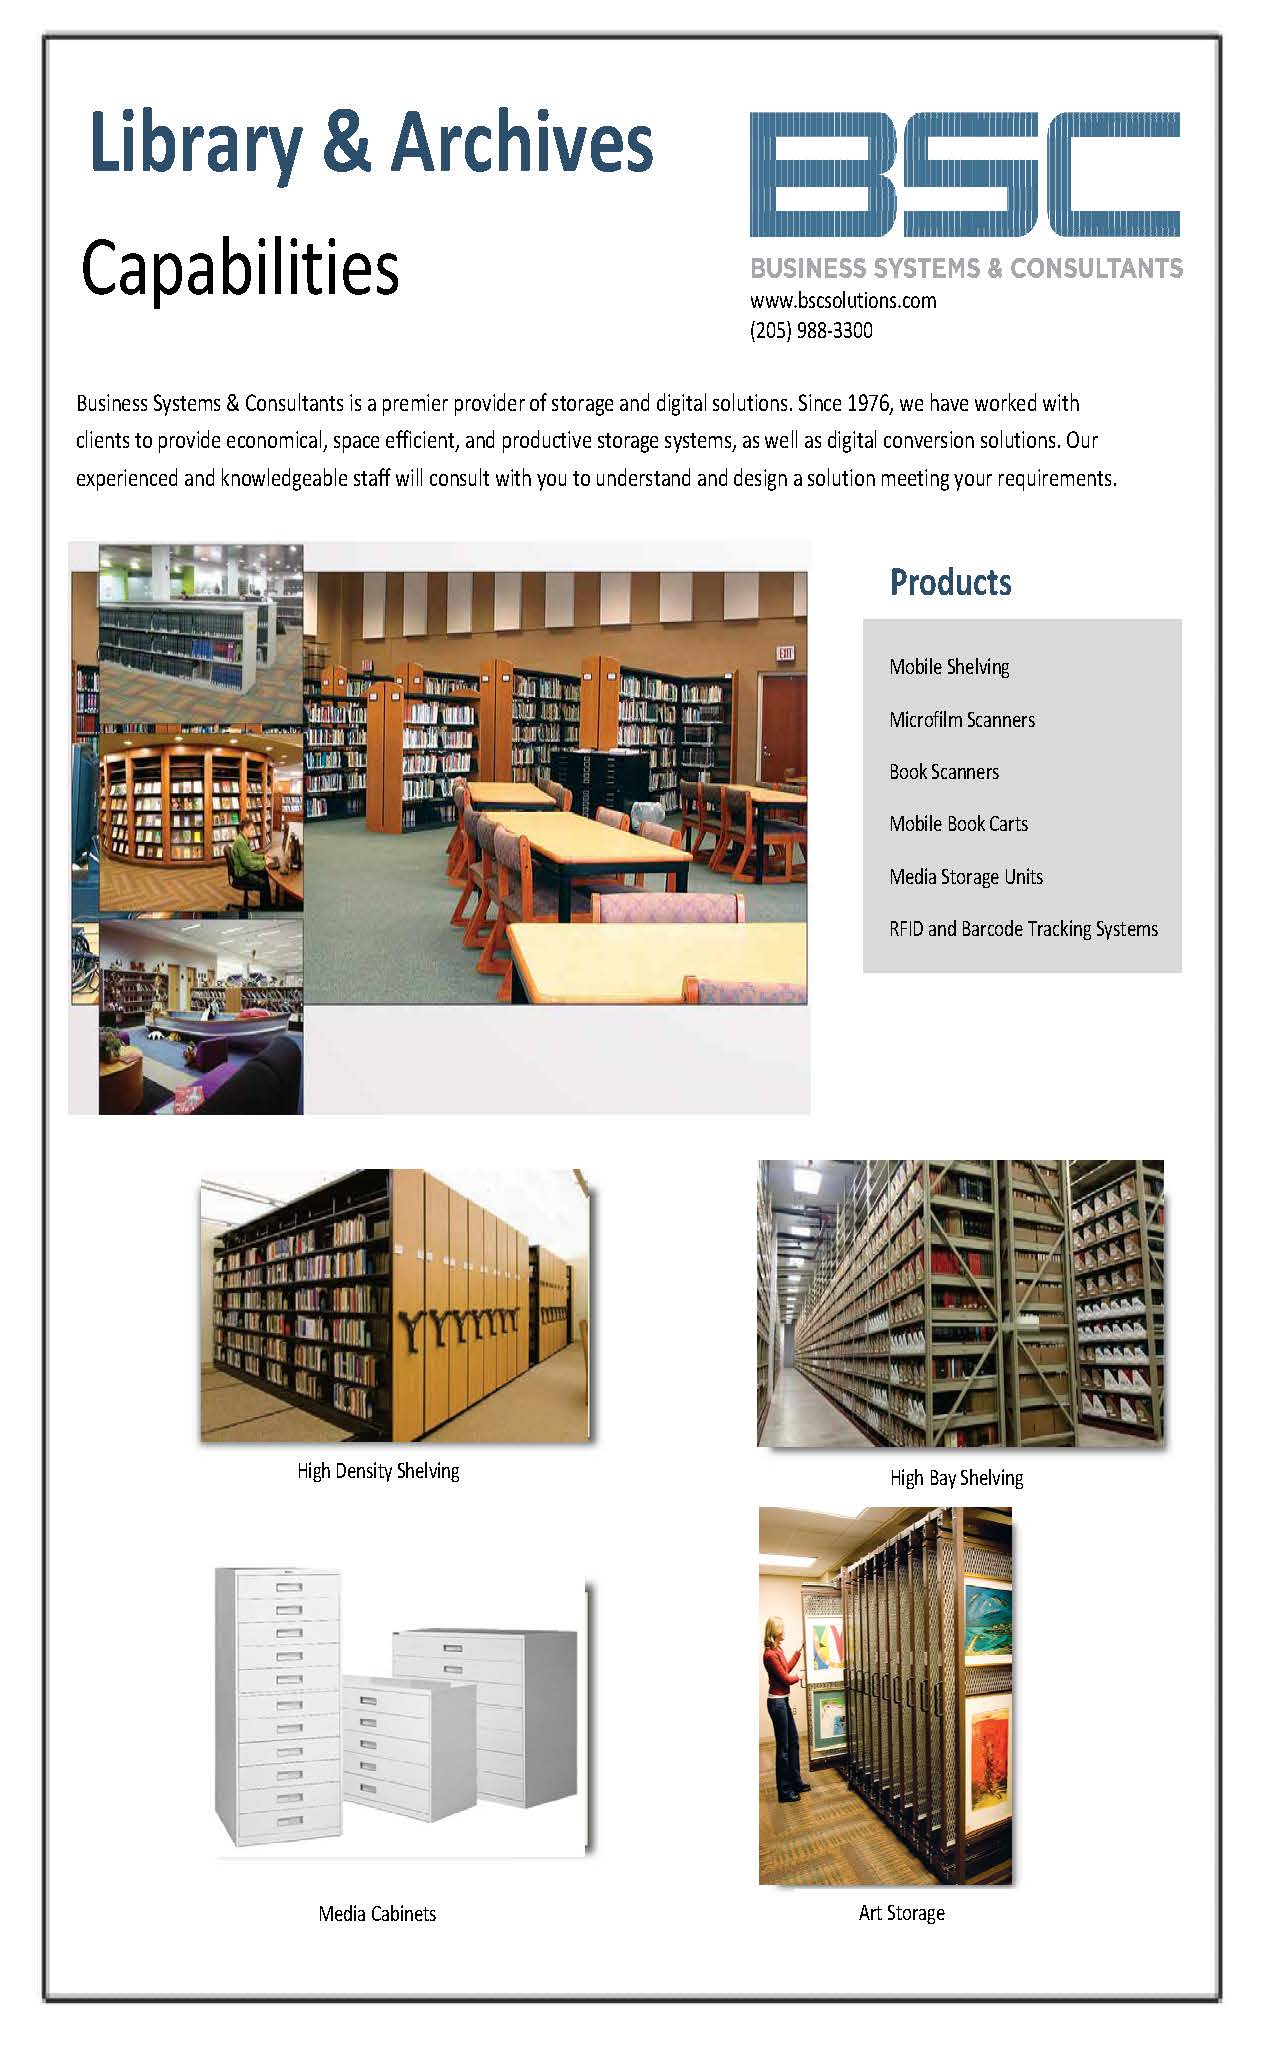 BSC Library & Archives Capabilities